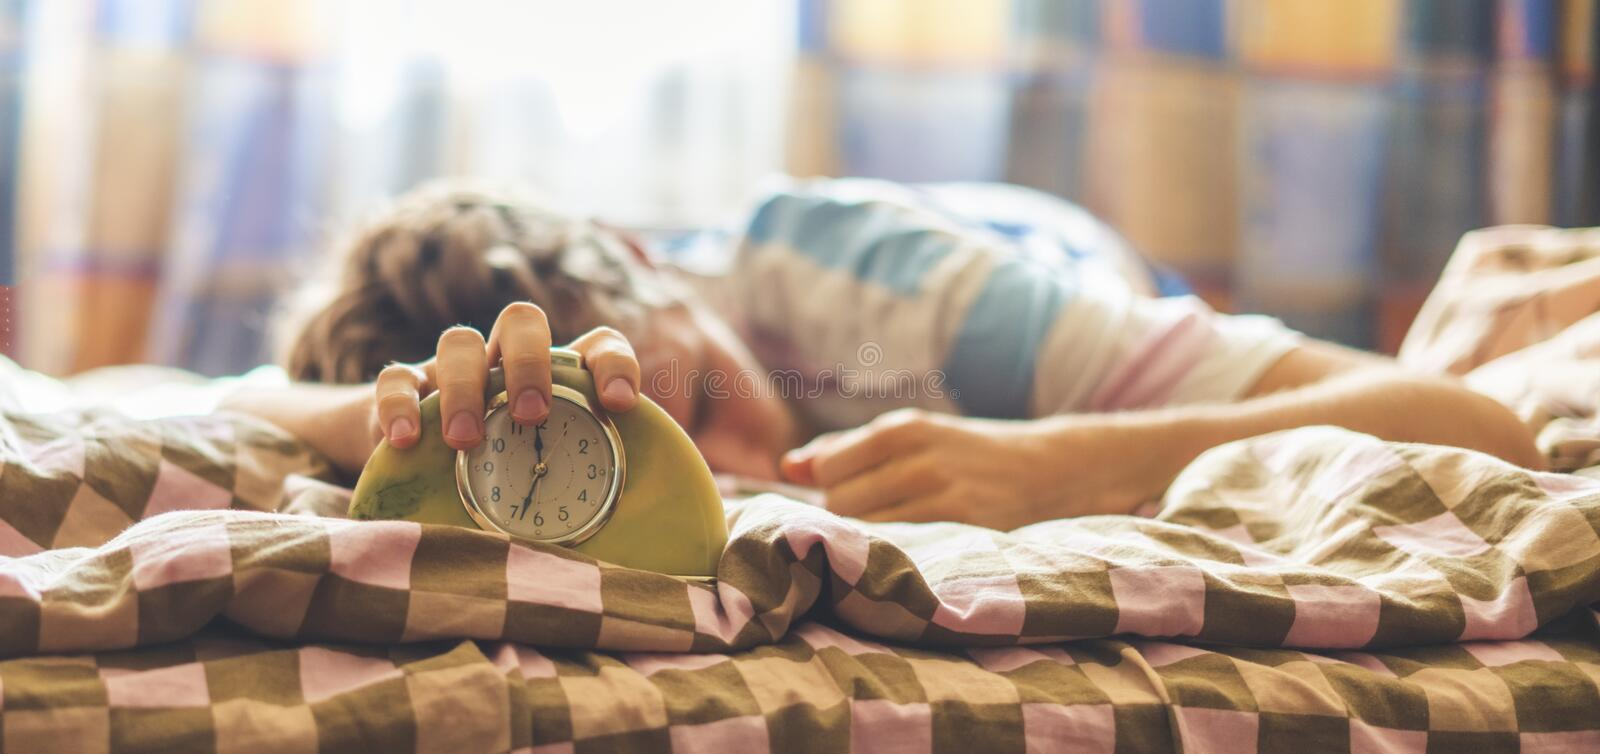 Time to wake up, sleeping lying in bed man beats the alarm clock in the morning f royalty free stock photo